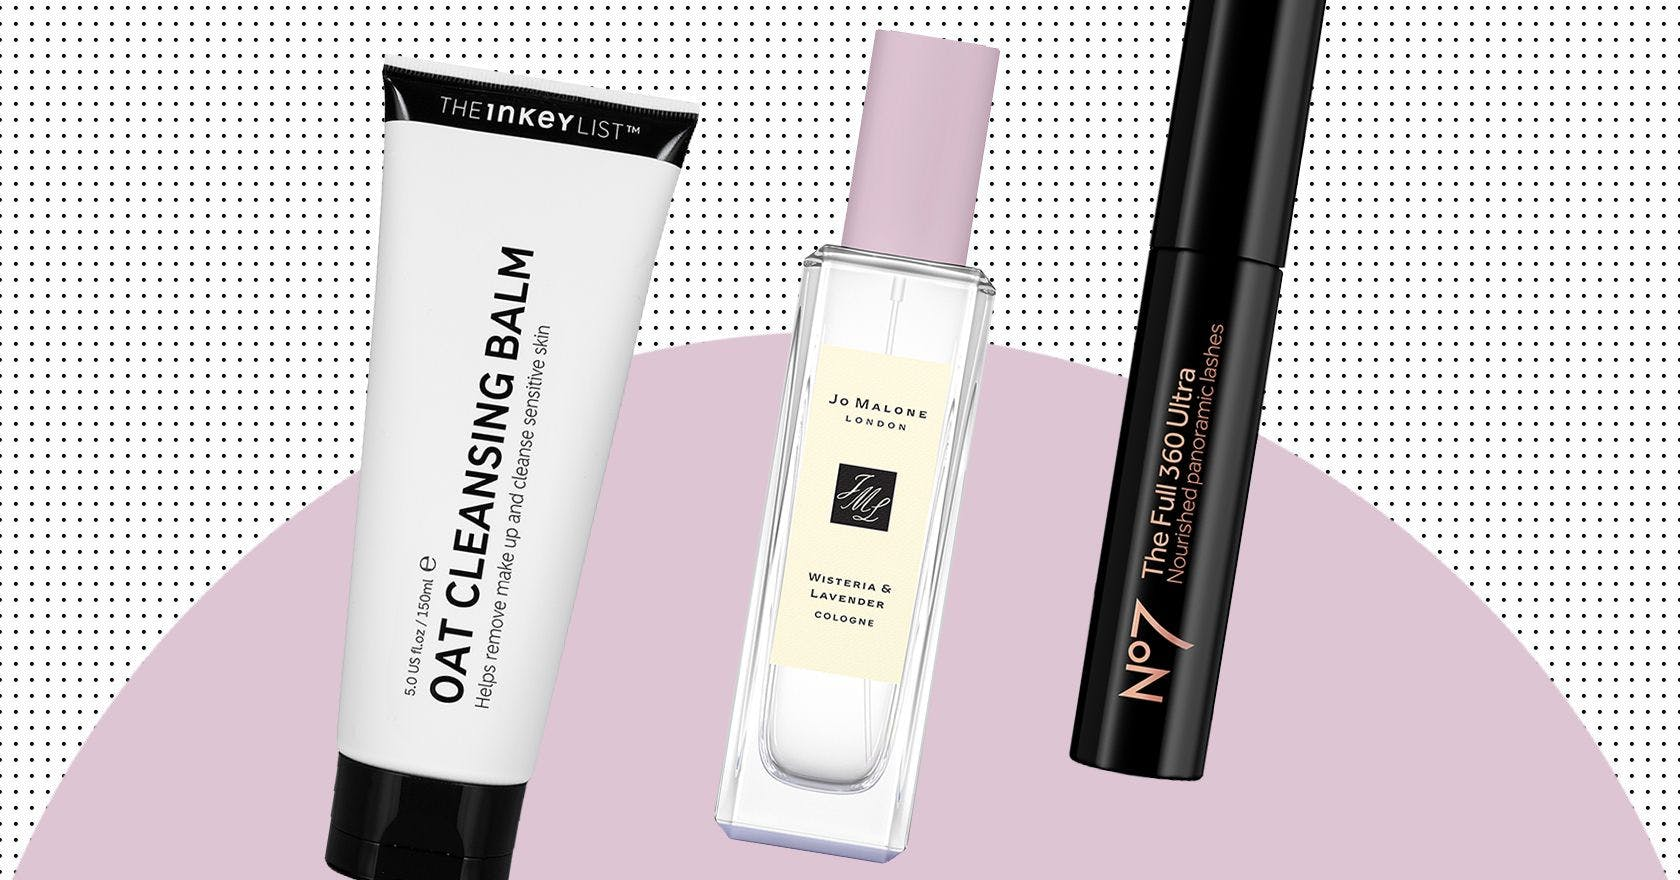 The 11 best beauty buys from February, as chosen by Stylist's experts